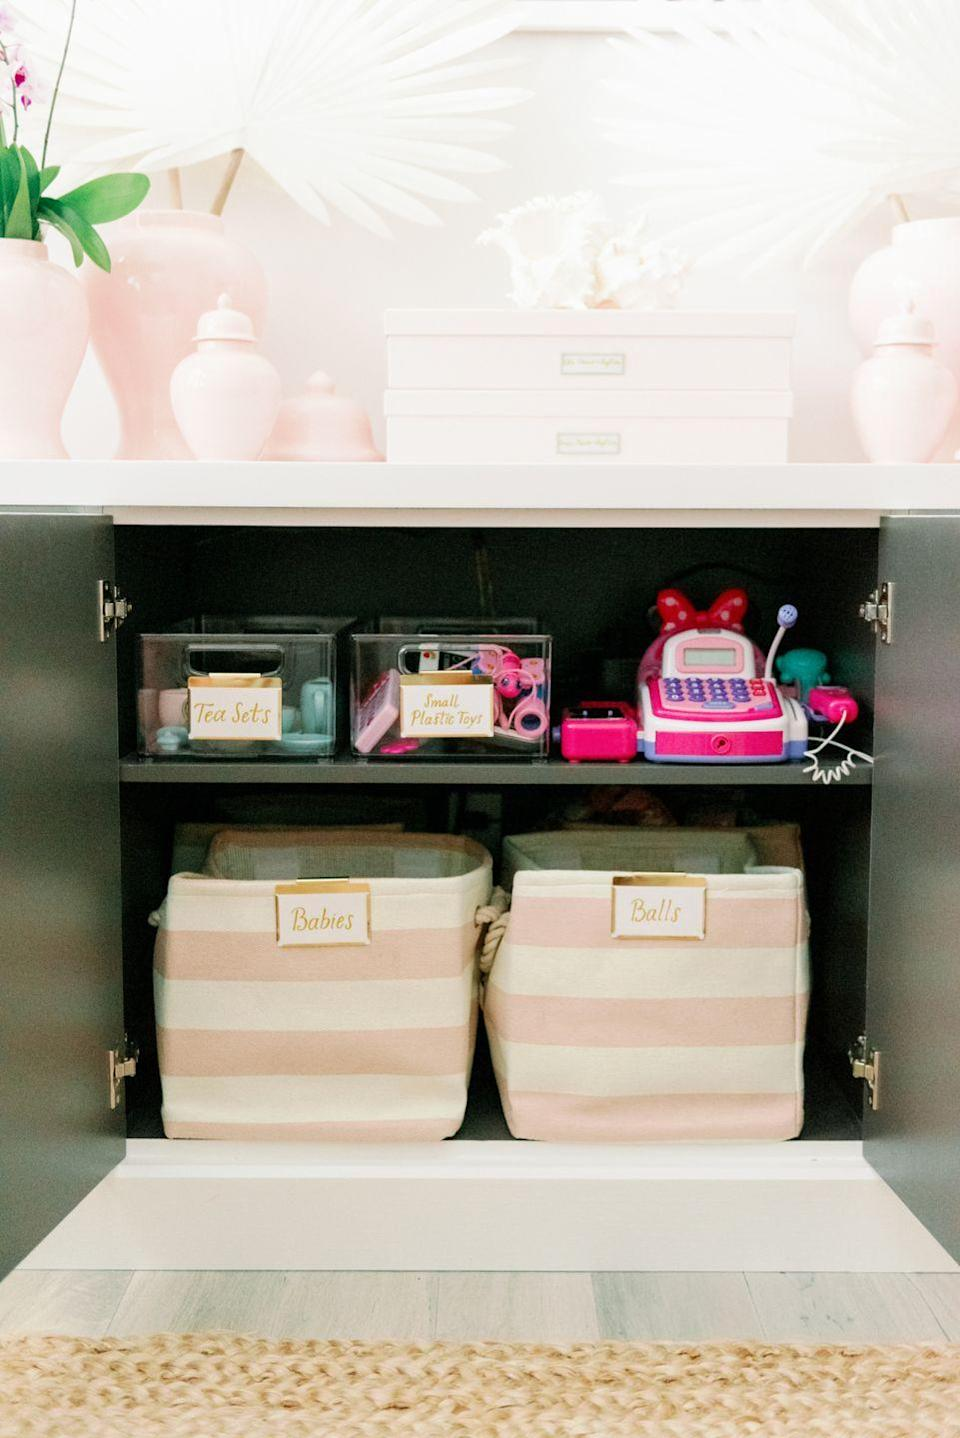 """<p>Don't just stuff everything in the closet! By keeping bins tucked away in cabinets, clutter will be kept at bay even behind the scenes.</p><p><strong>See more about this project from <a href=""""https://www.palmbeachlately.com/2019/09/15/home-organizing-beths-office-playroom-with-urban-simplicity-and-the-container-store/"""" rel=""""nofollow noopener"""" target=""""_blank"""" data-ylk=""""slk:Palm Beach Lately, Urban Simplicity, and The Container Store"""" class=""""link rapid-noclick-resp"""">Palm Beach Lately, Urban Simplicity, and The Container Store</a>.</strong></p><p><strong><strong><a class=""""link rapid-noclick-resp"""" href=""""https://www.amazon.com/TheWarmHome-Foldable-Storage-Collapsible-15-711-88-3/dp/B07BF73TT1?tag=syn-yahoo-20&ascsubtag=%5Bartid%7C10063.g.36014277%5Bsrc%7Cyahoo-us"""" rel=""""nofollow noopener"""" target=""""_blank"""" data-ylk=""""slk:SHOP FABRIC BASKETS"""">SHOP FABRIC BASKETS</a></strong><br></strong></p>"""